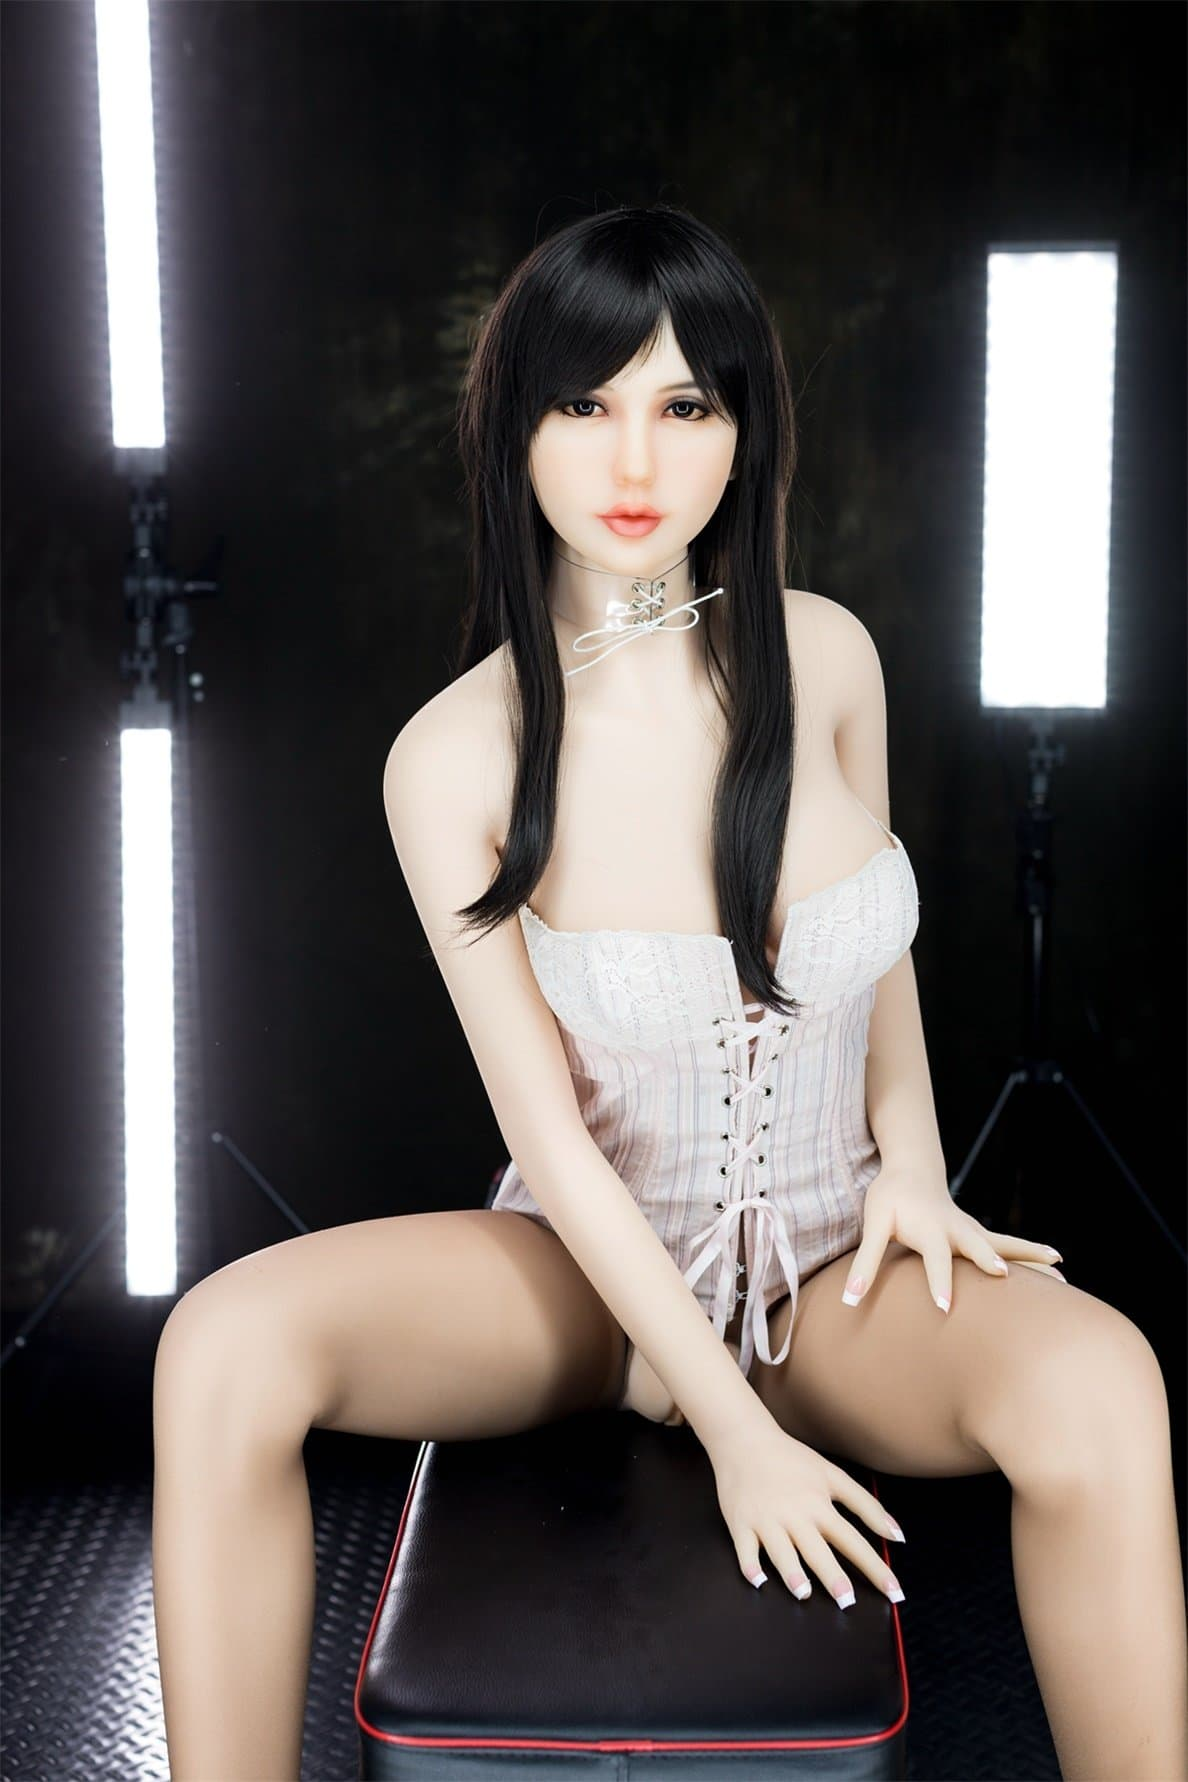 chyna 163cm black hair japanese big boobs athletic tpe wm sex doll(11)